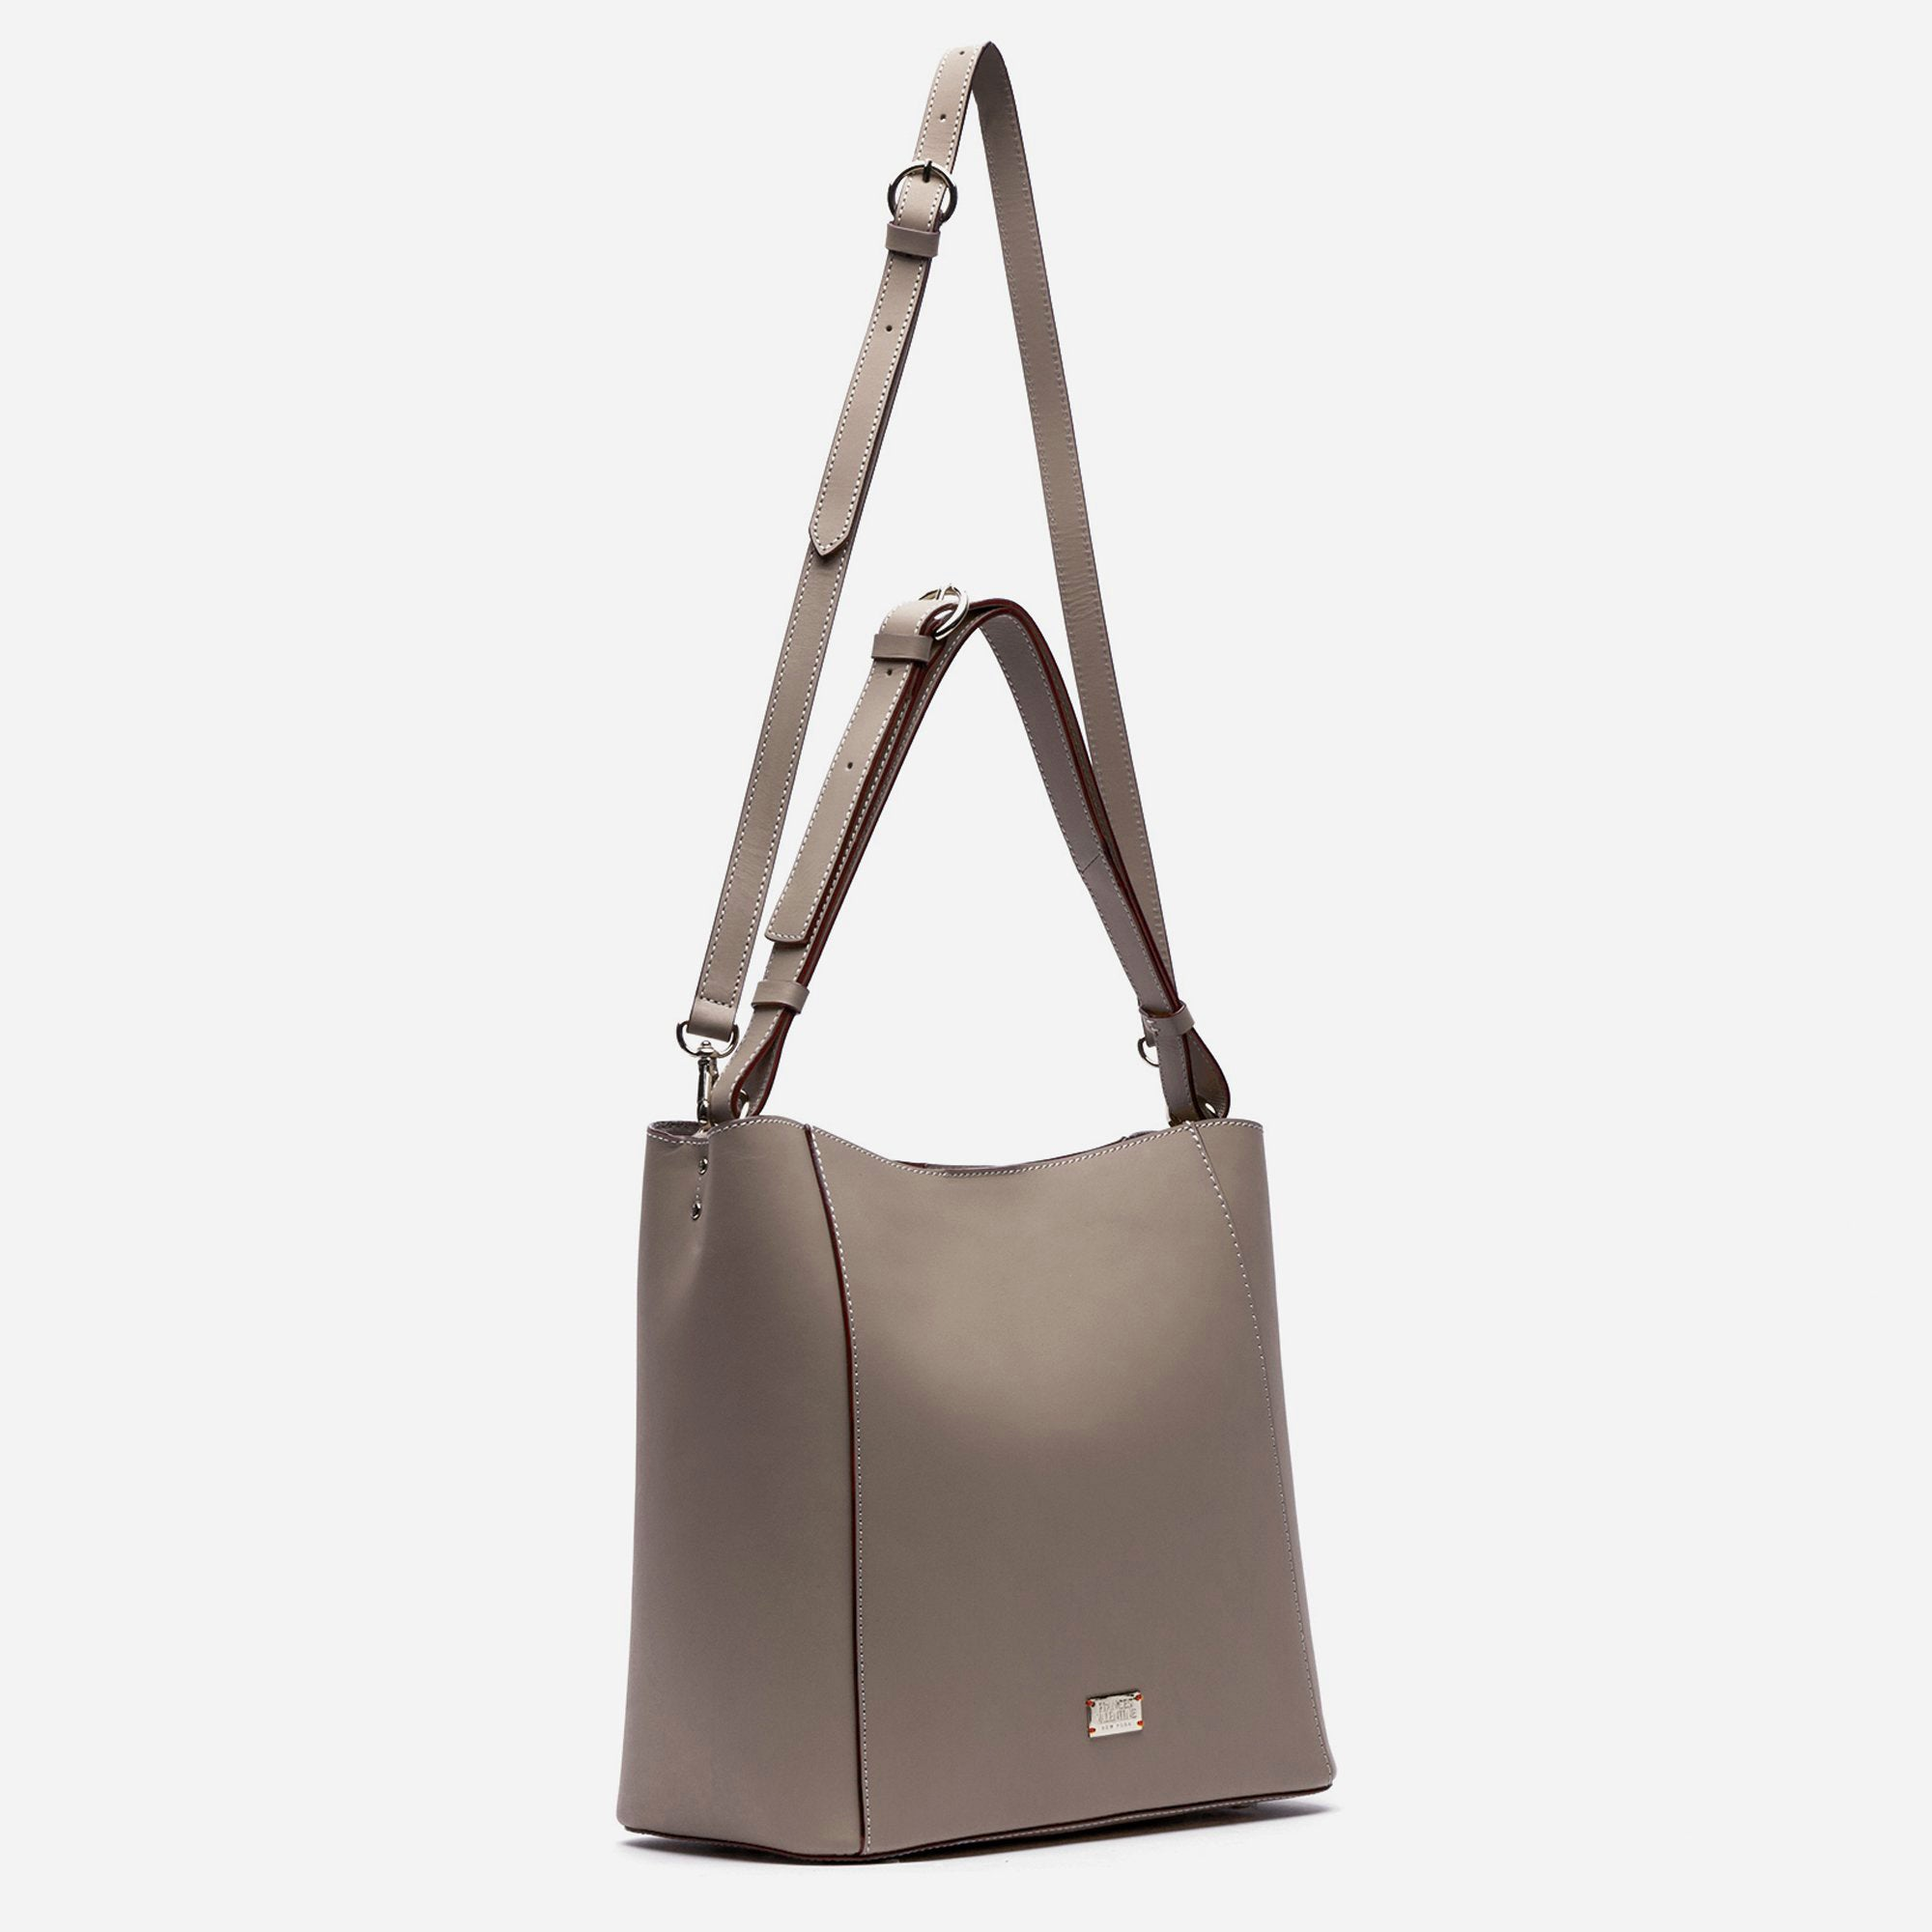 June Hobo Handbag Leather Grey